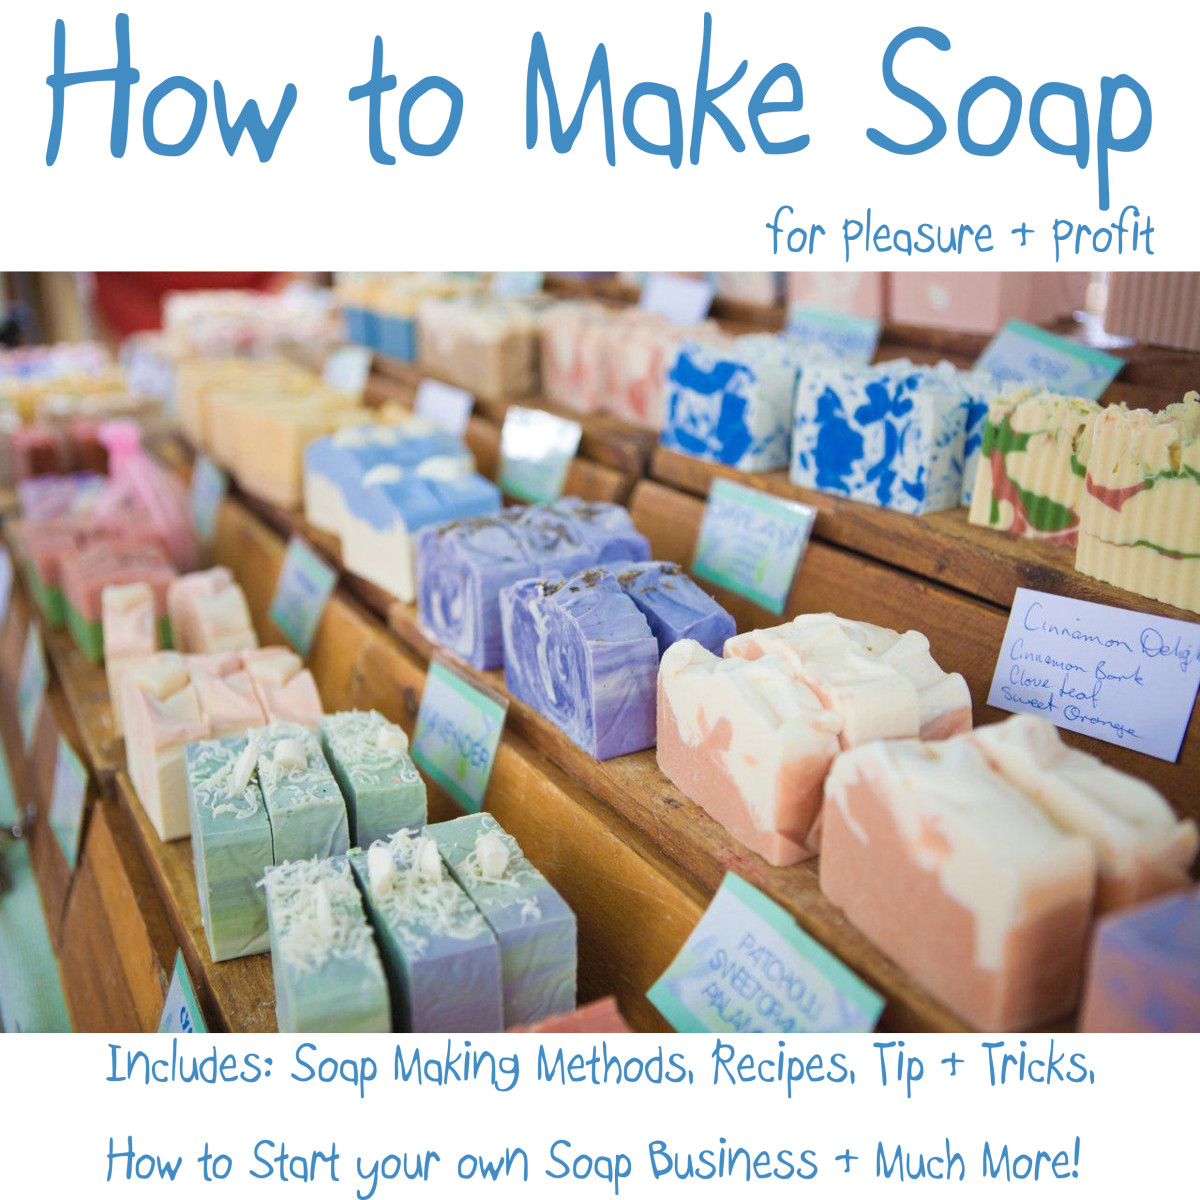 Learn How To Make Your Own Soap